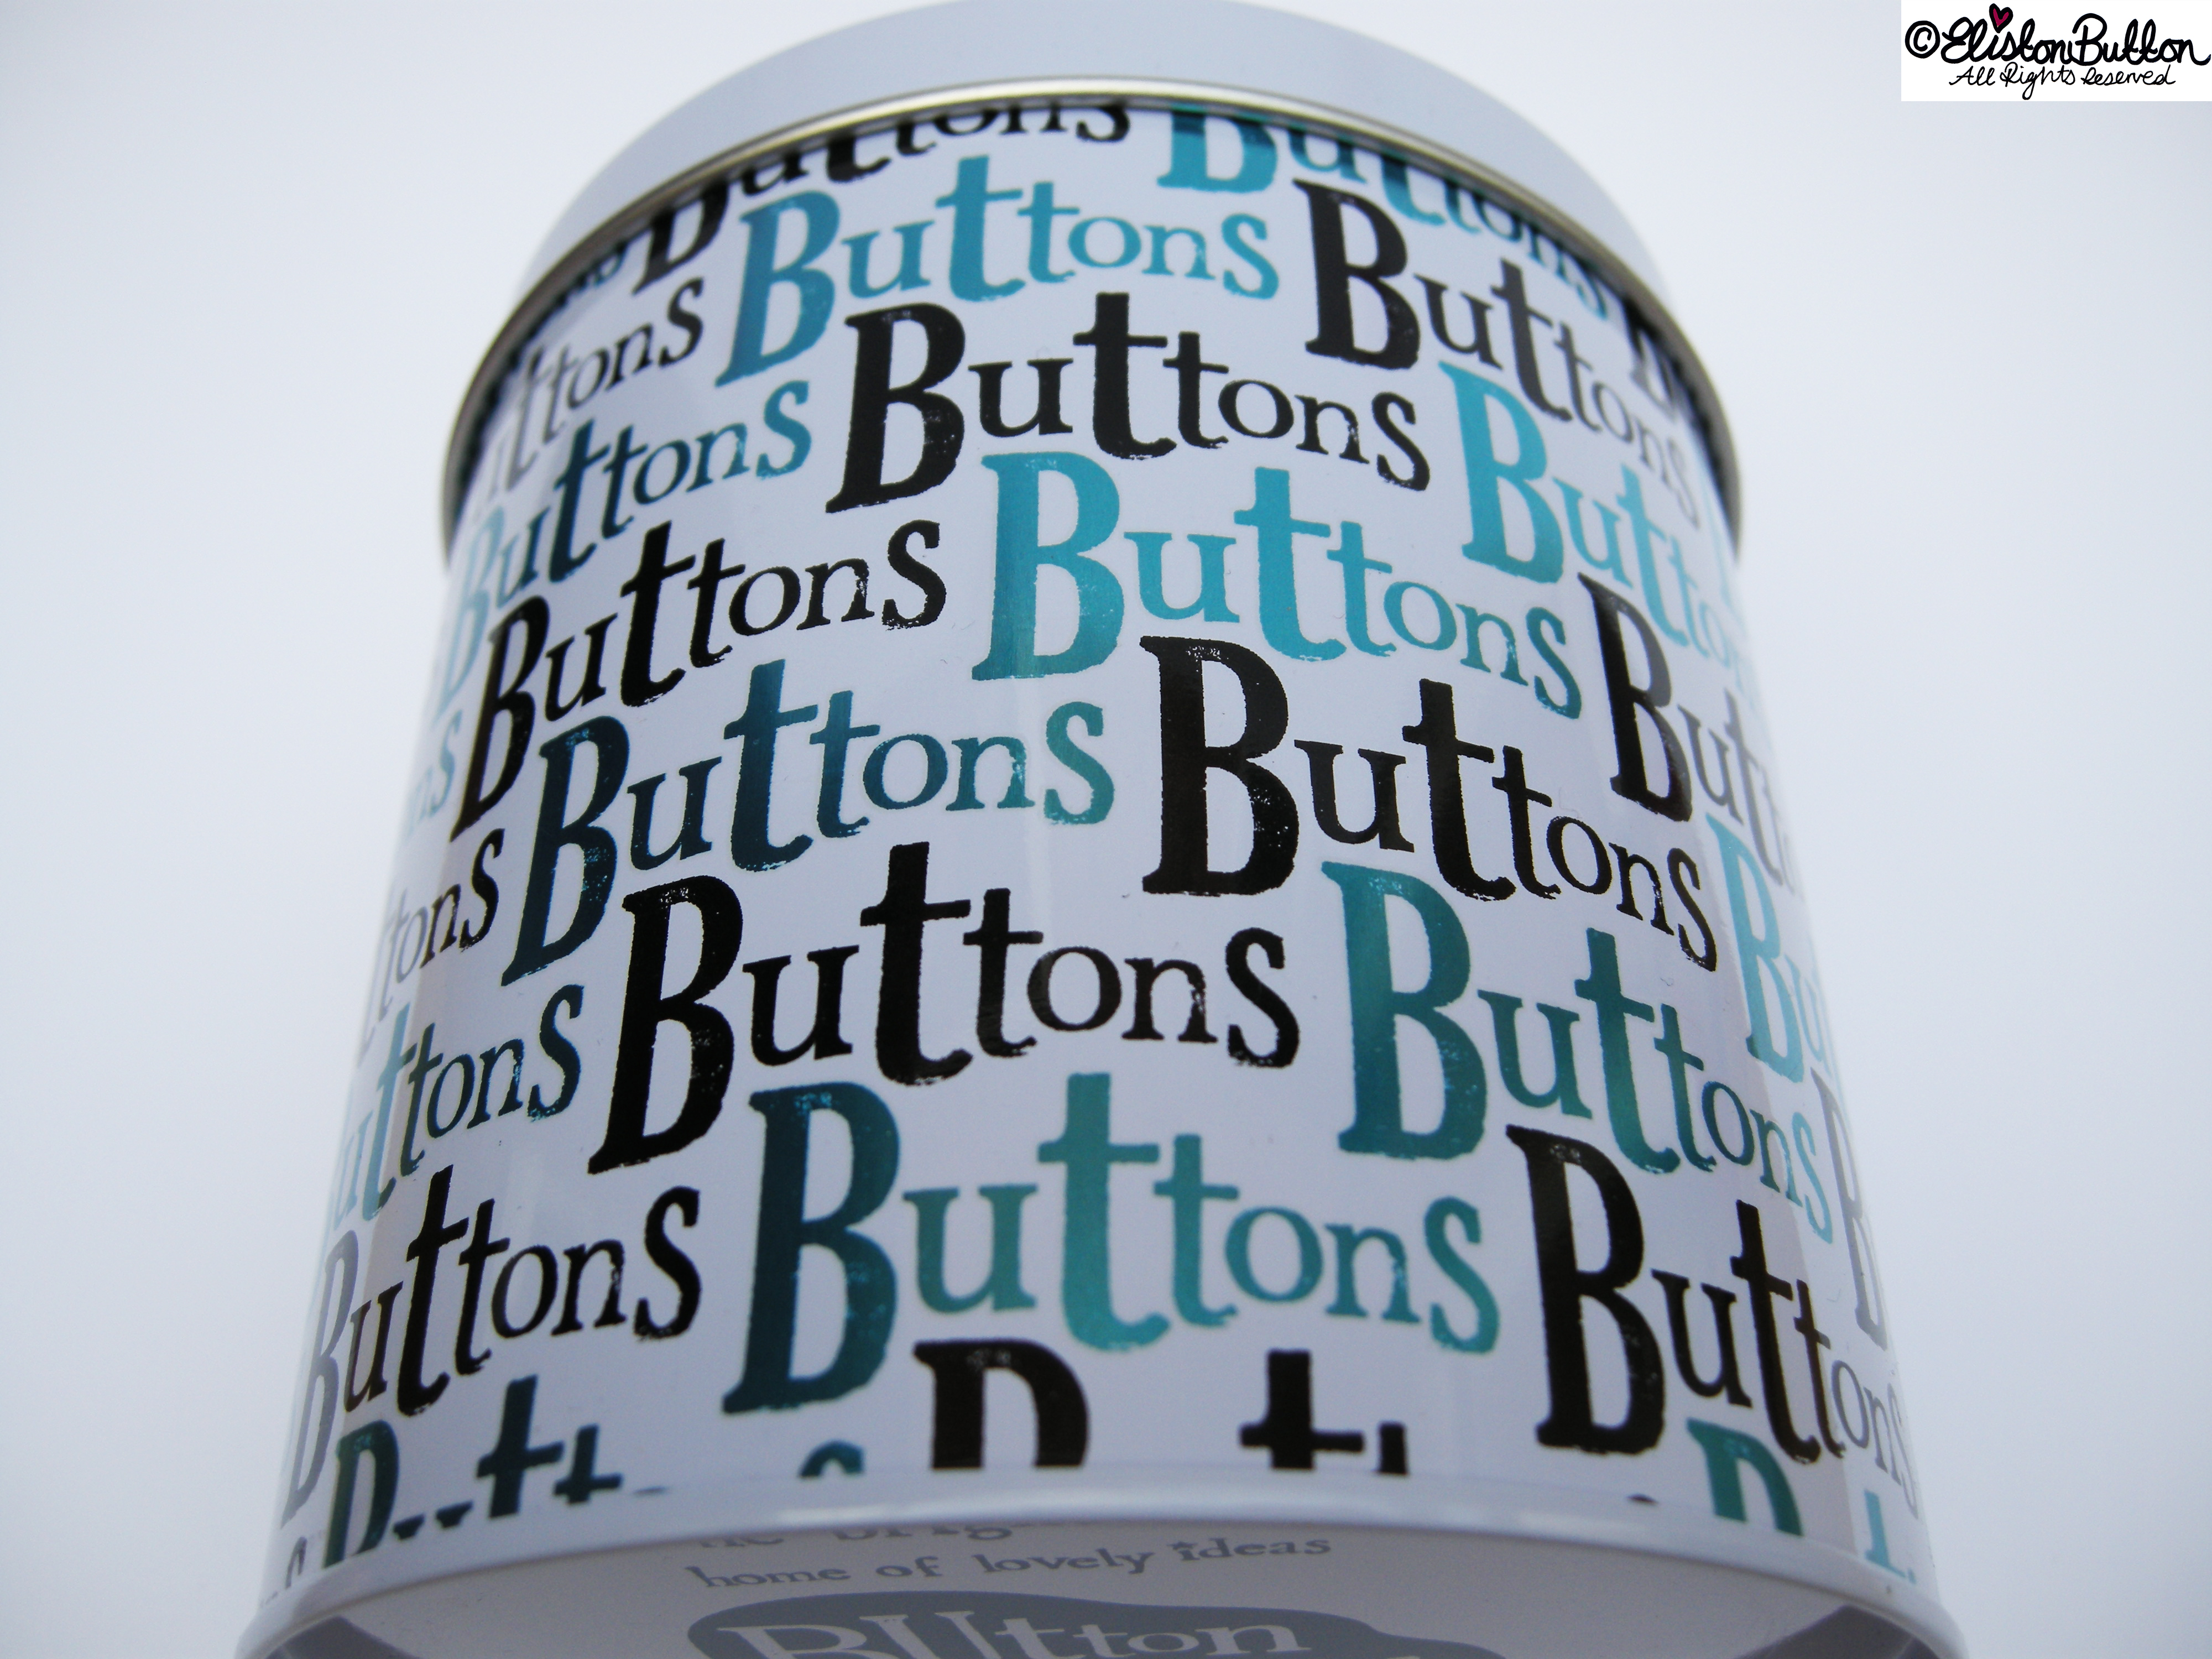 Don't Worry Mr Button I Will Save You Button Tin by The Bright Side - Typography - Don't Worry Mr Button I Will Save You at www.elistonbutton.com - Eliston Button - That Crafty Kid – Art, Design, Craft & Adventure.